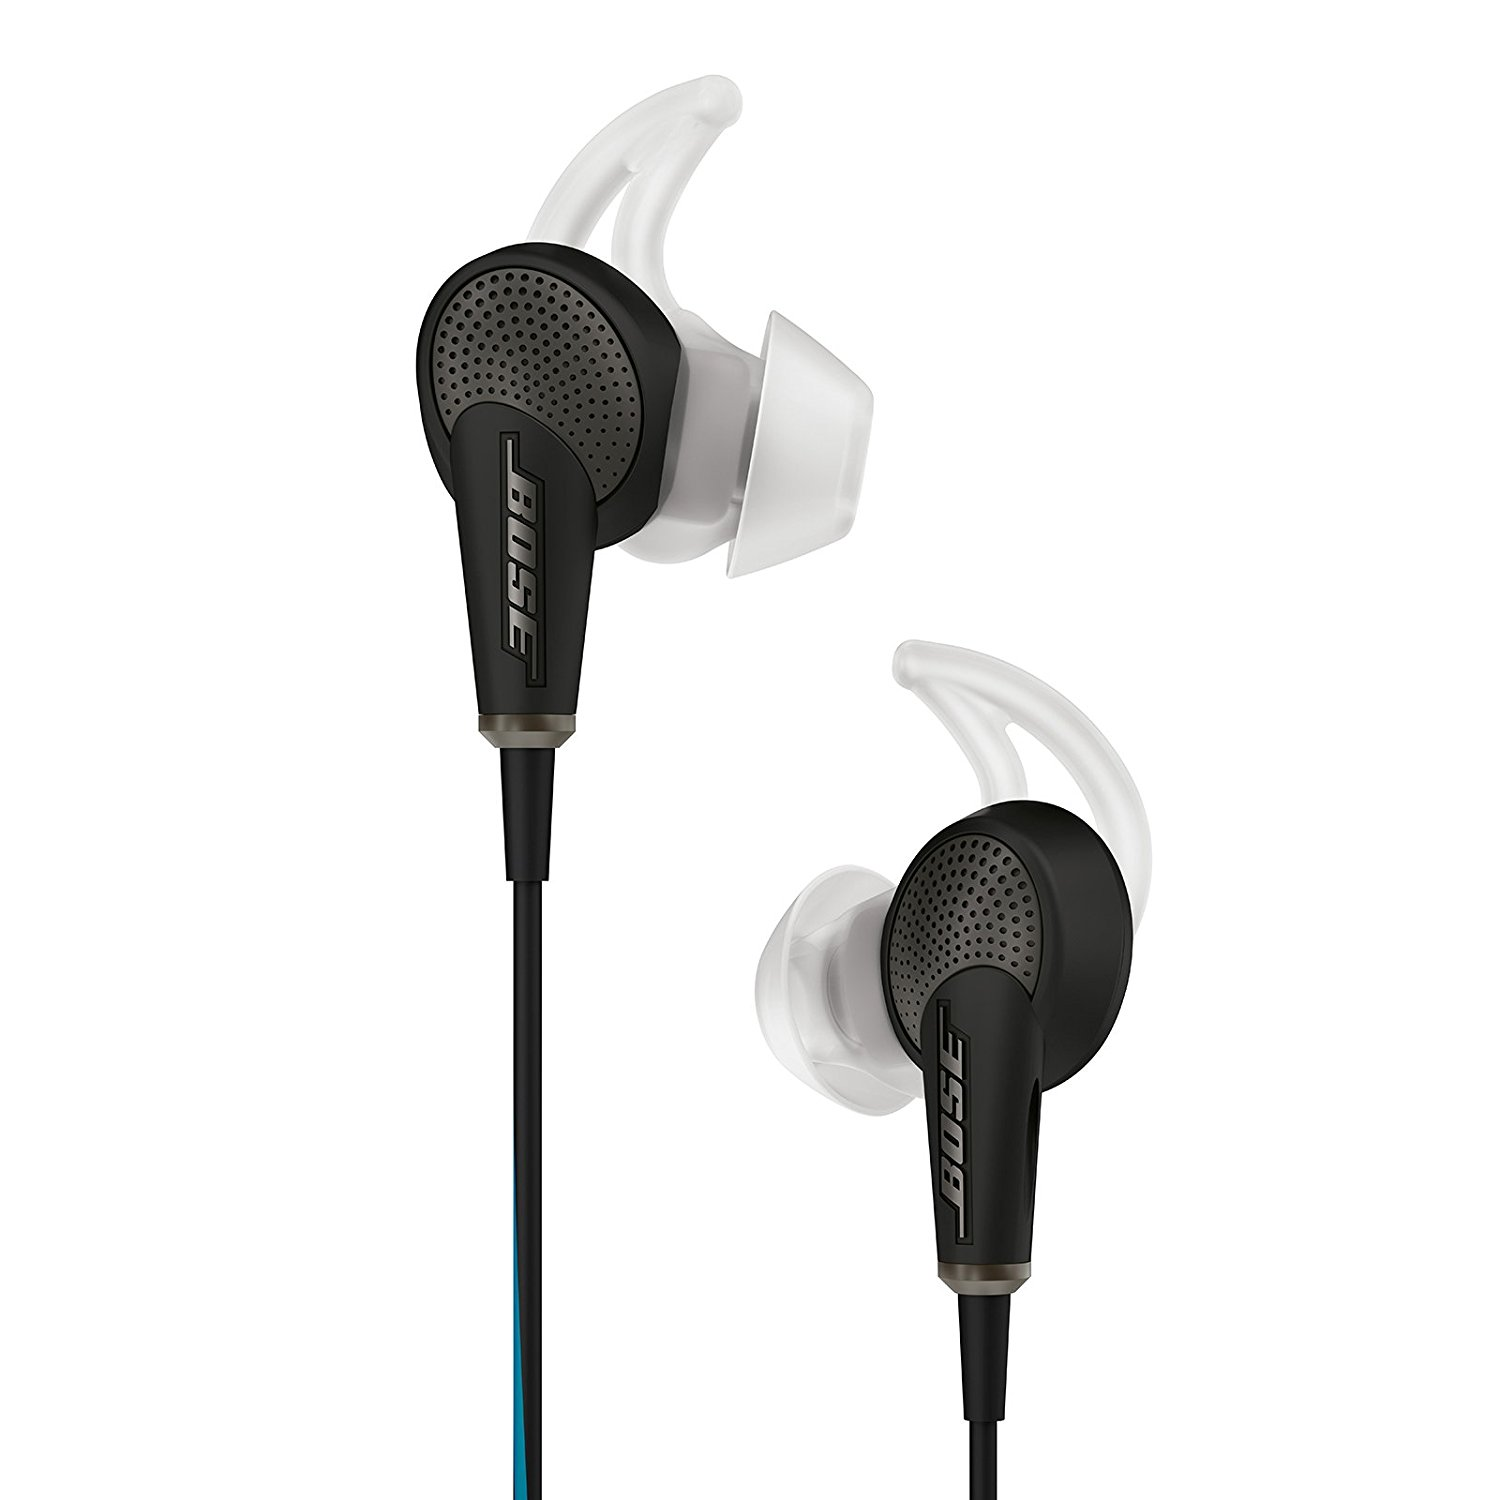 Bose QuietComfort Earbud Headphones